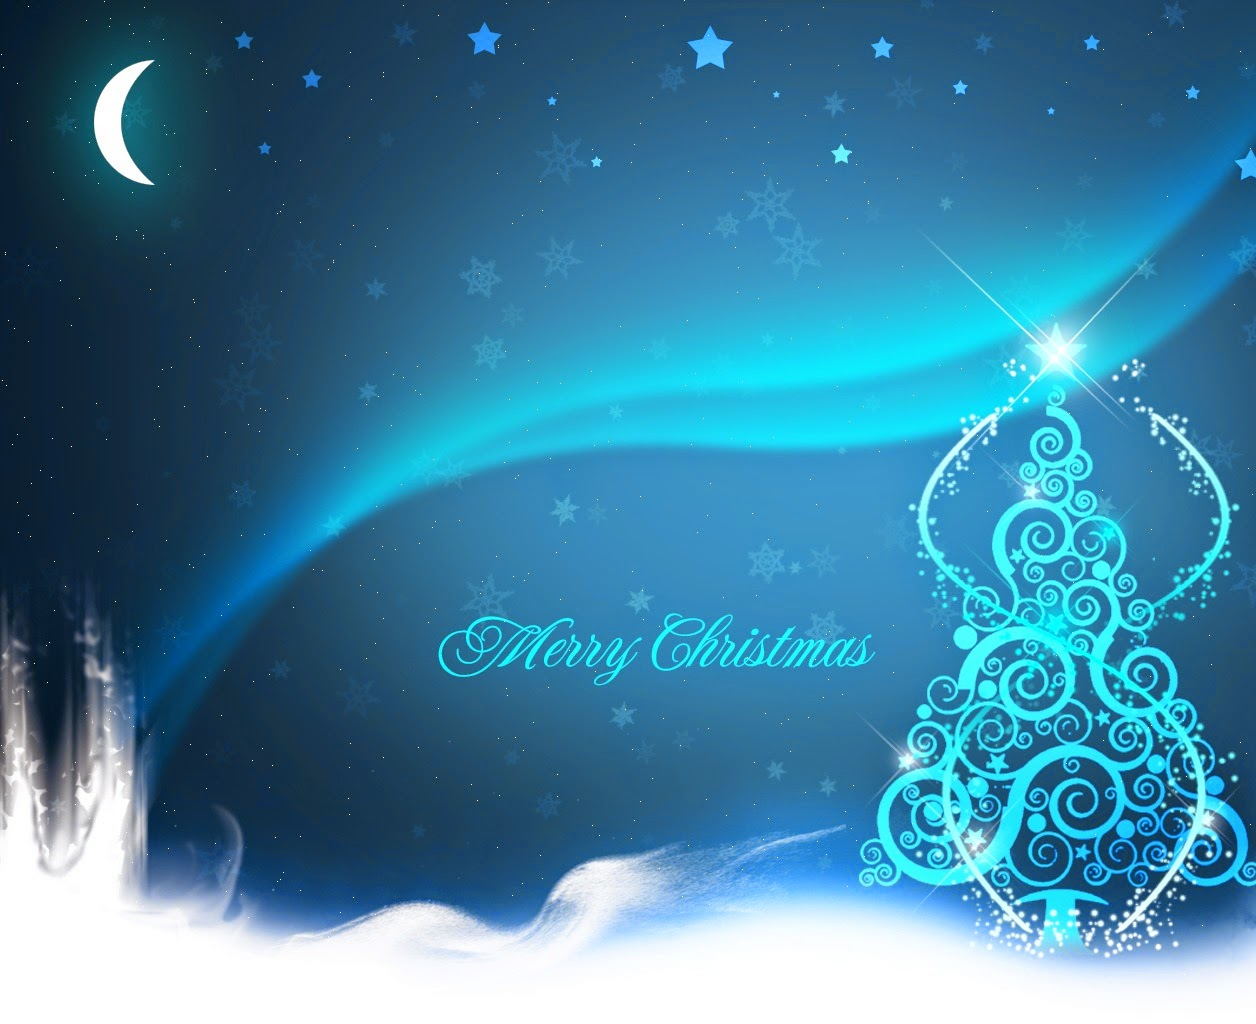 Free desktop background wallpapers desktop wallpapers 2014 free 2014 free christmas greeting cards merry christmas wallpaper e cards m4hsunfo